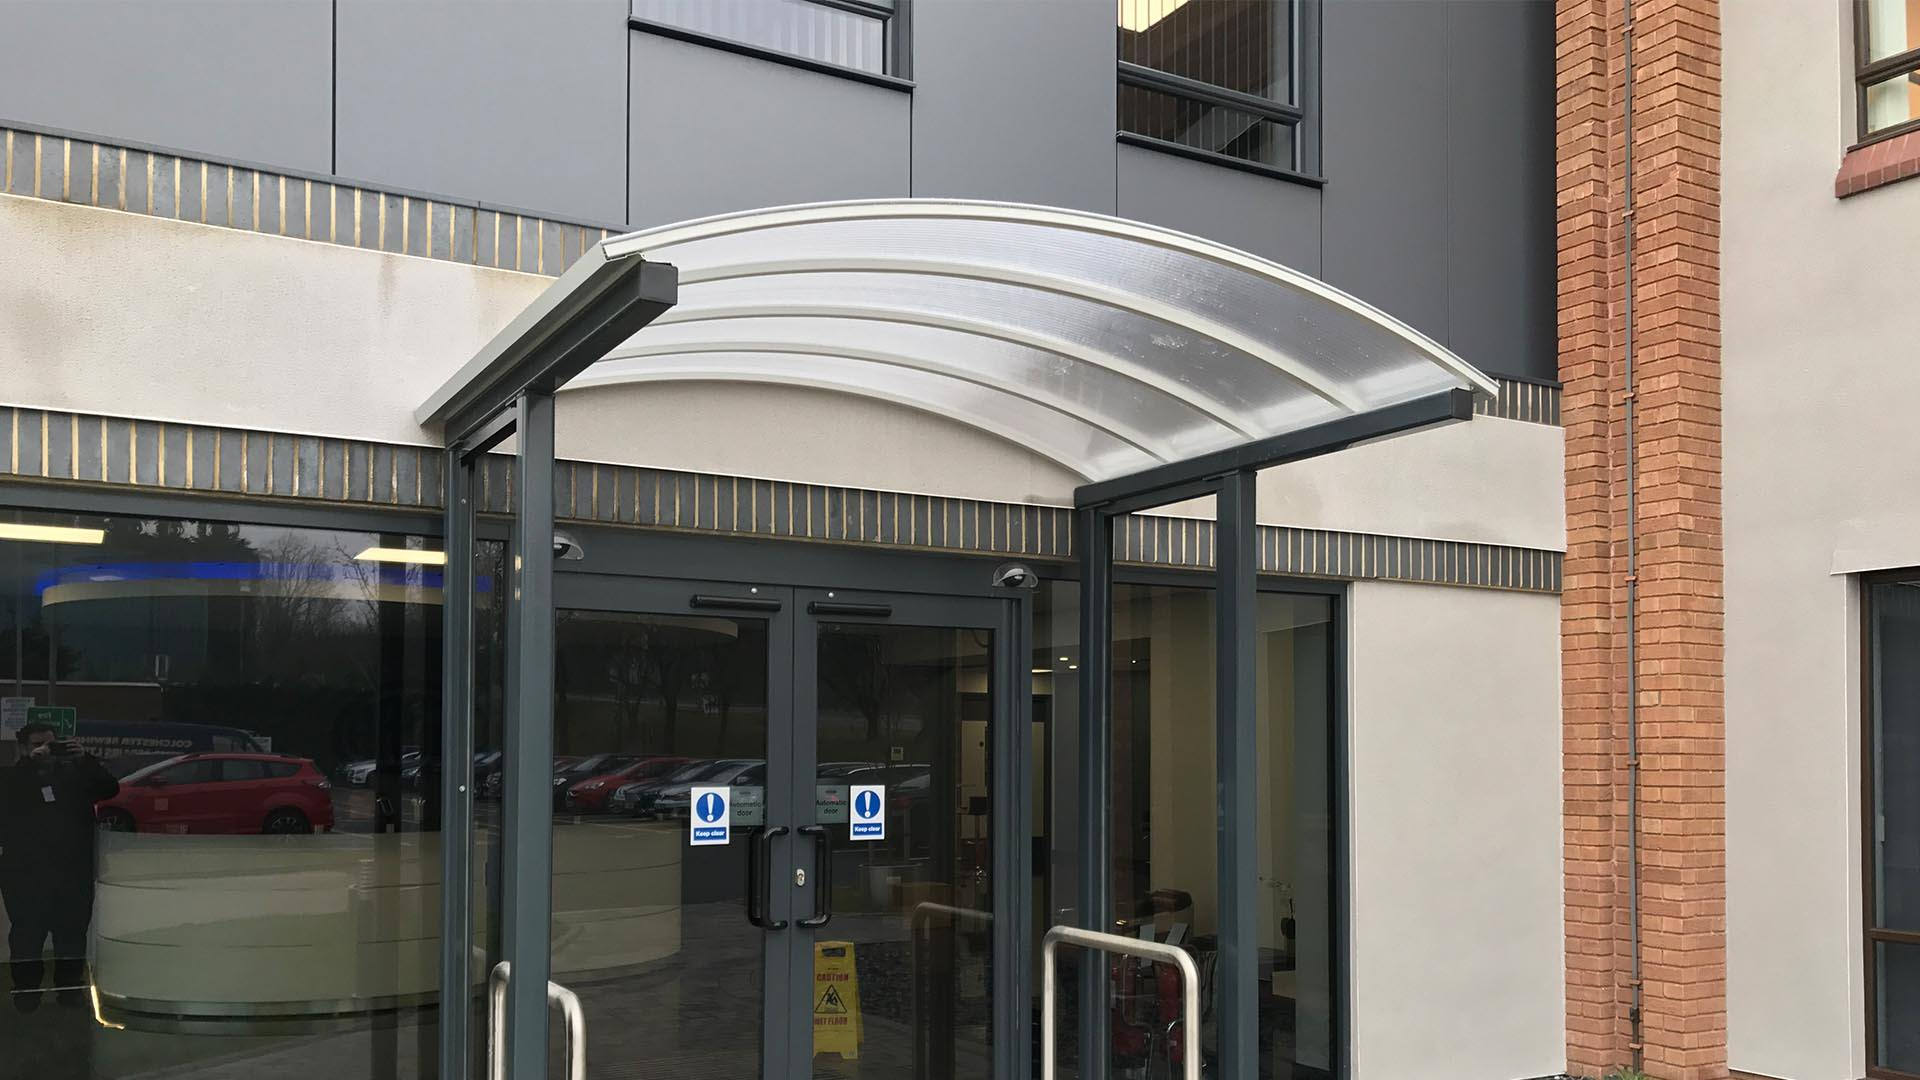 Commercial Entrance Canopy Systems Canopies Uk